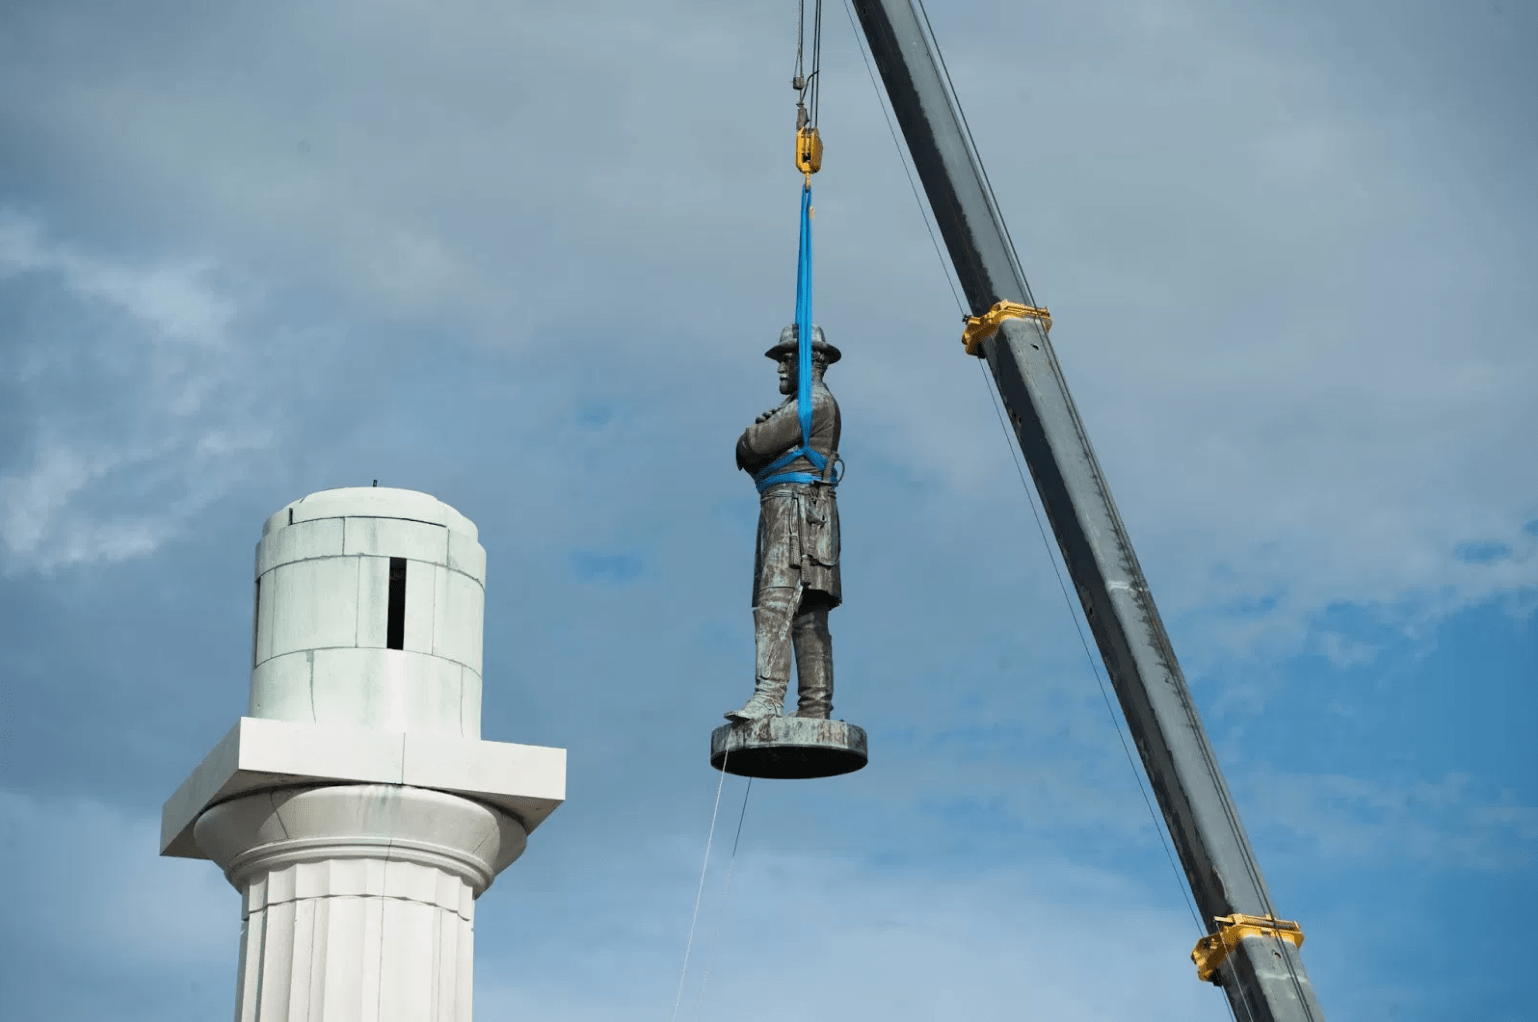 On May 19, 2017, the statue of Robert E. Lee was removed from Lee Circle in New Orleans